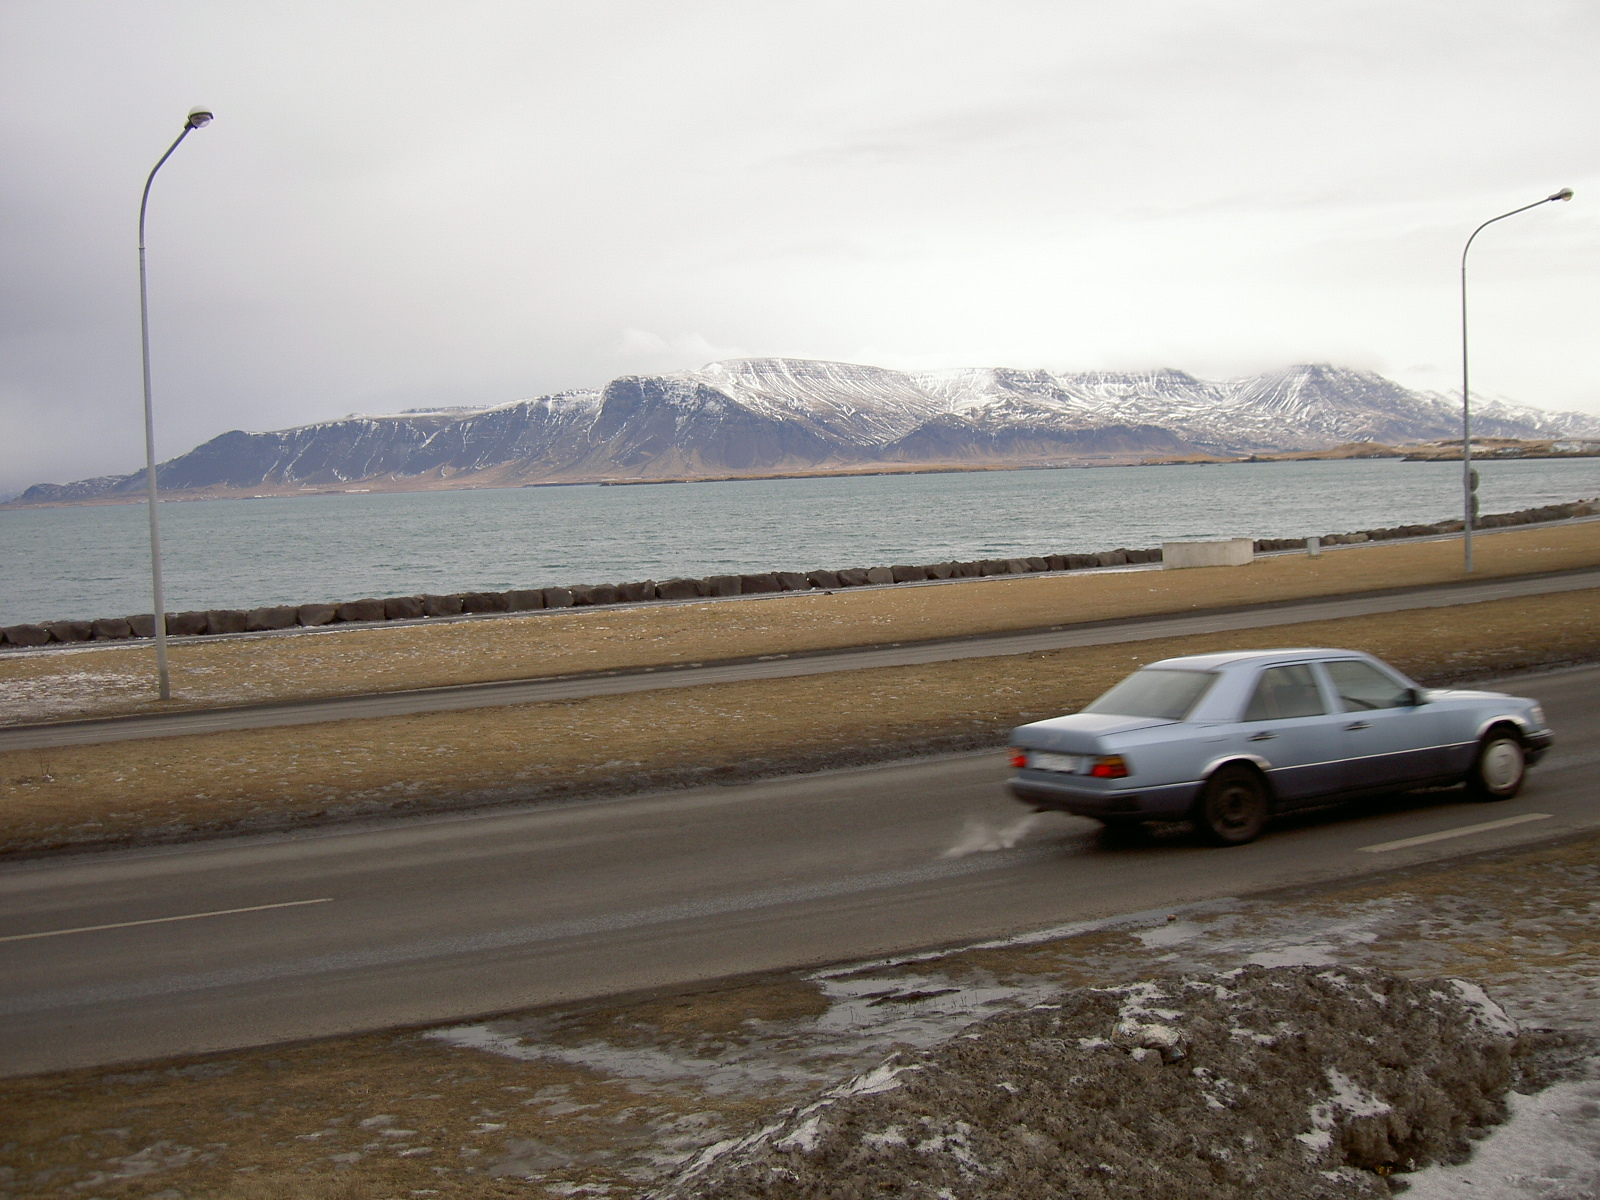 Sea as seen in Reykjavik (purpose of page is to display an image)